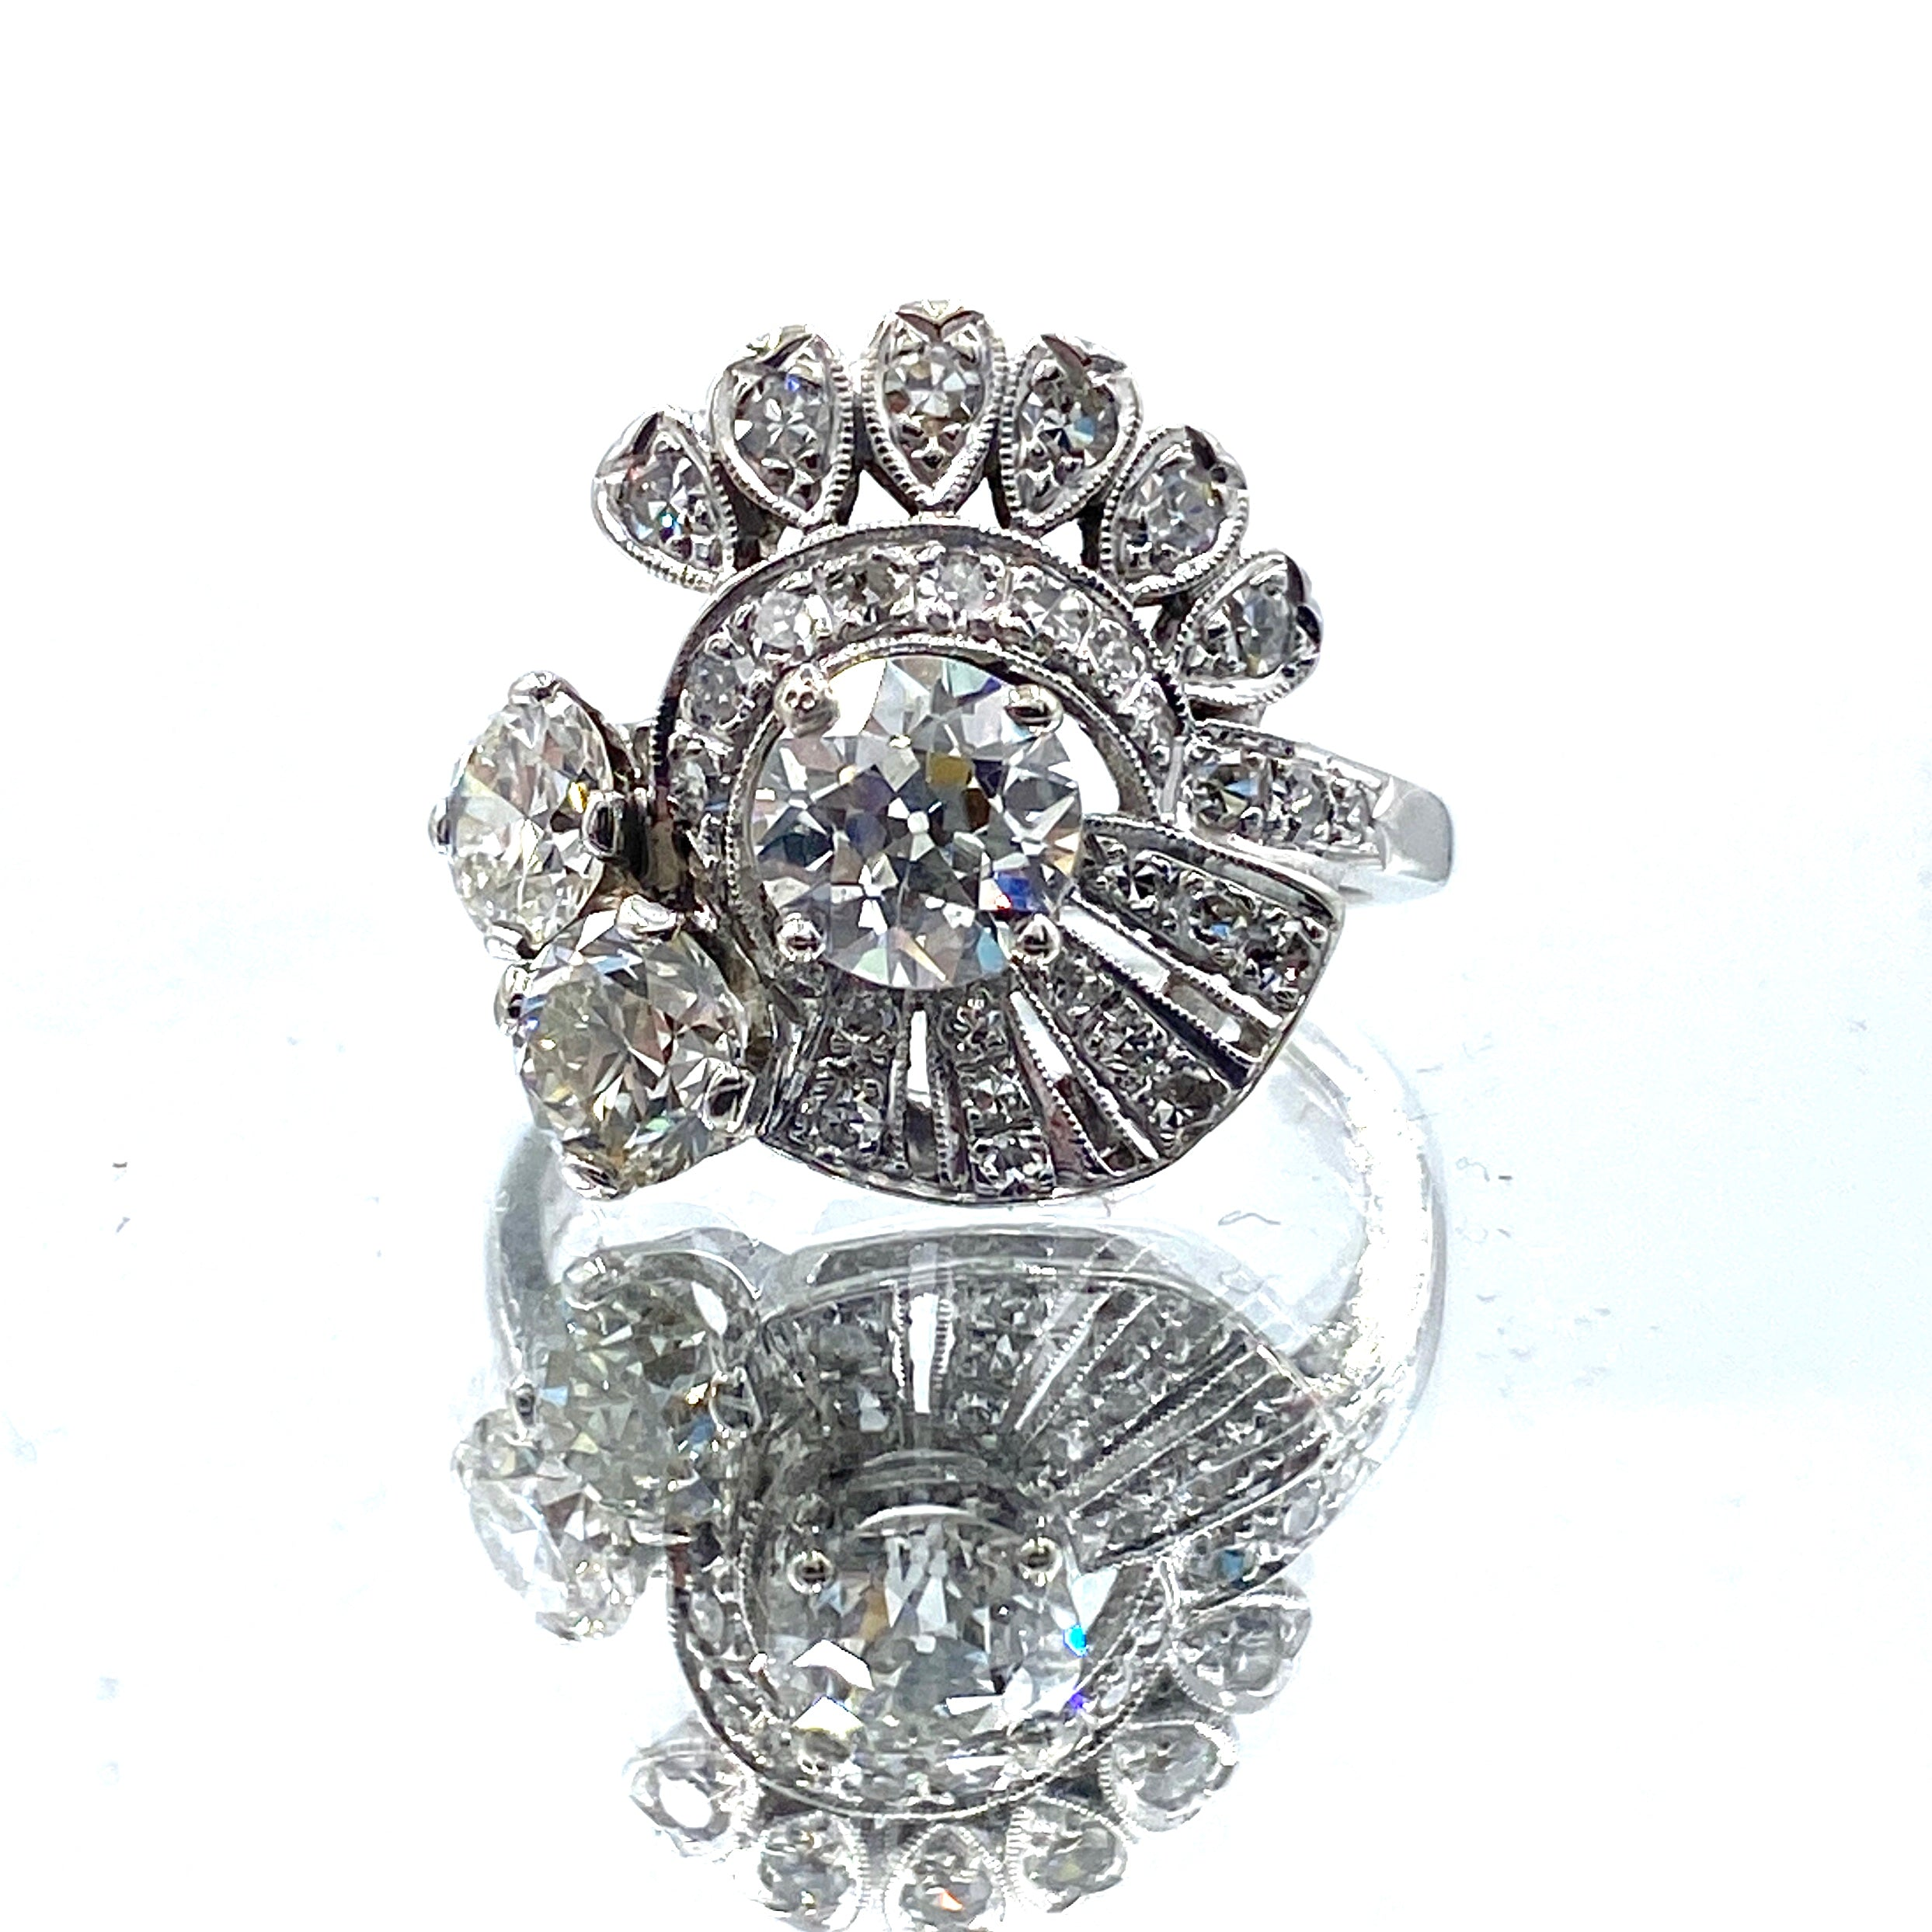 Vintage 1950s 3 Carat Diamond Dinner Ring 14K White Gold